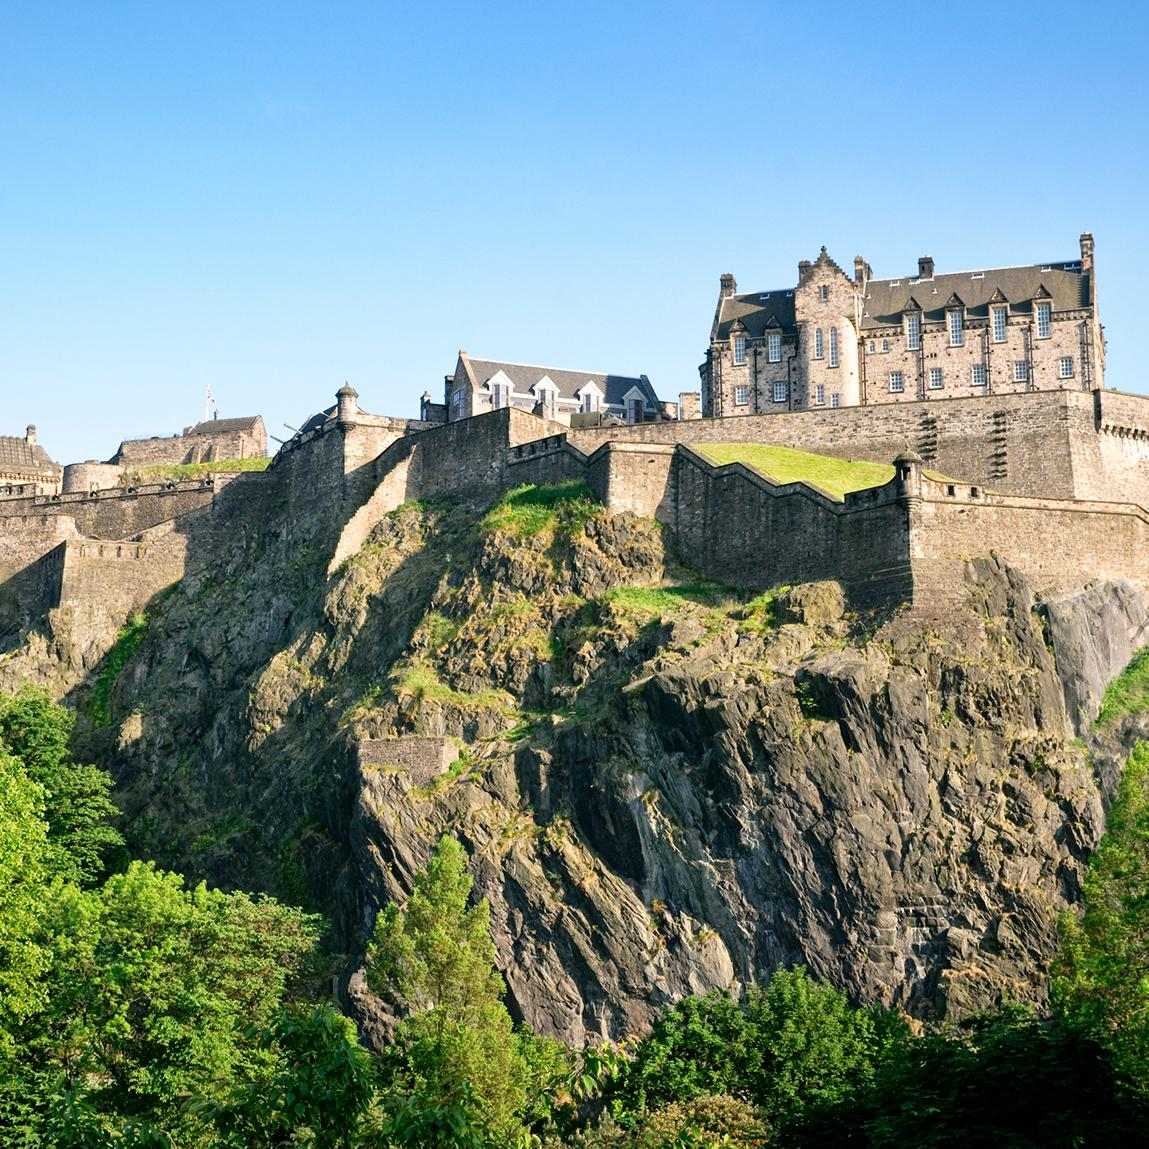 Views of cliffside castles and palaces in Edinburgh Scotland